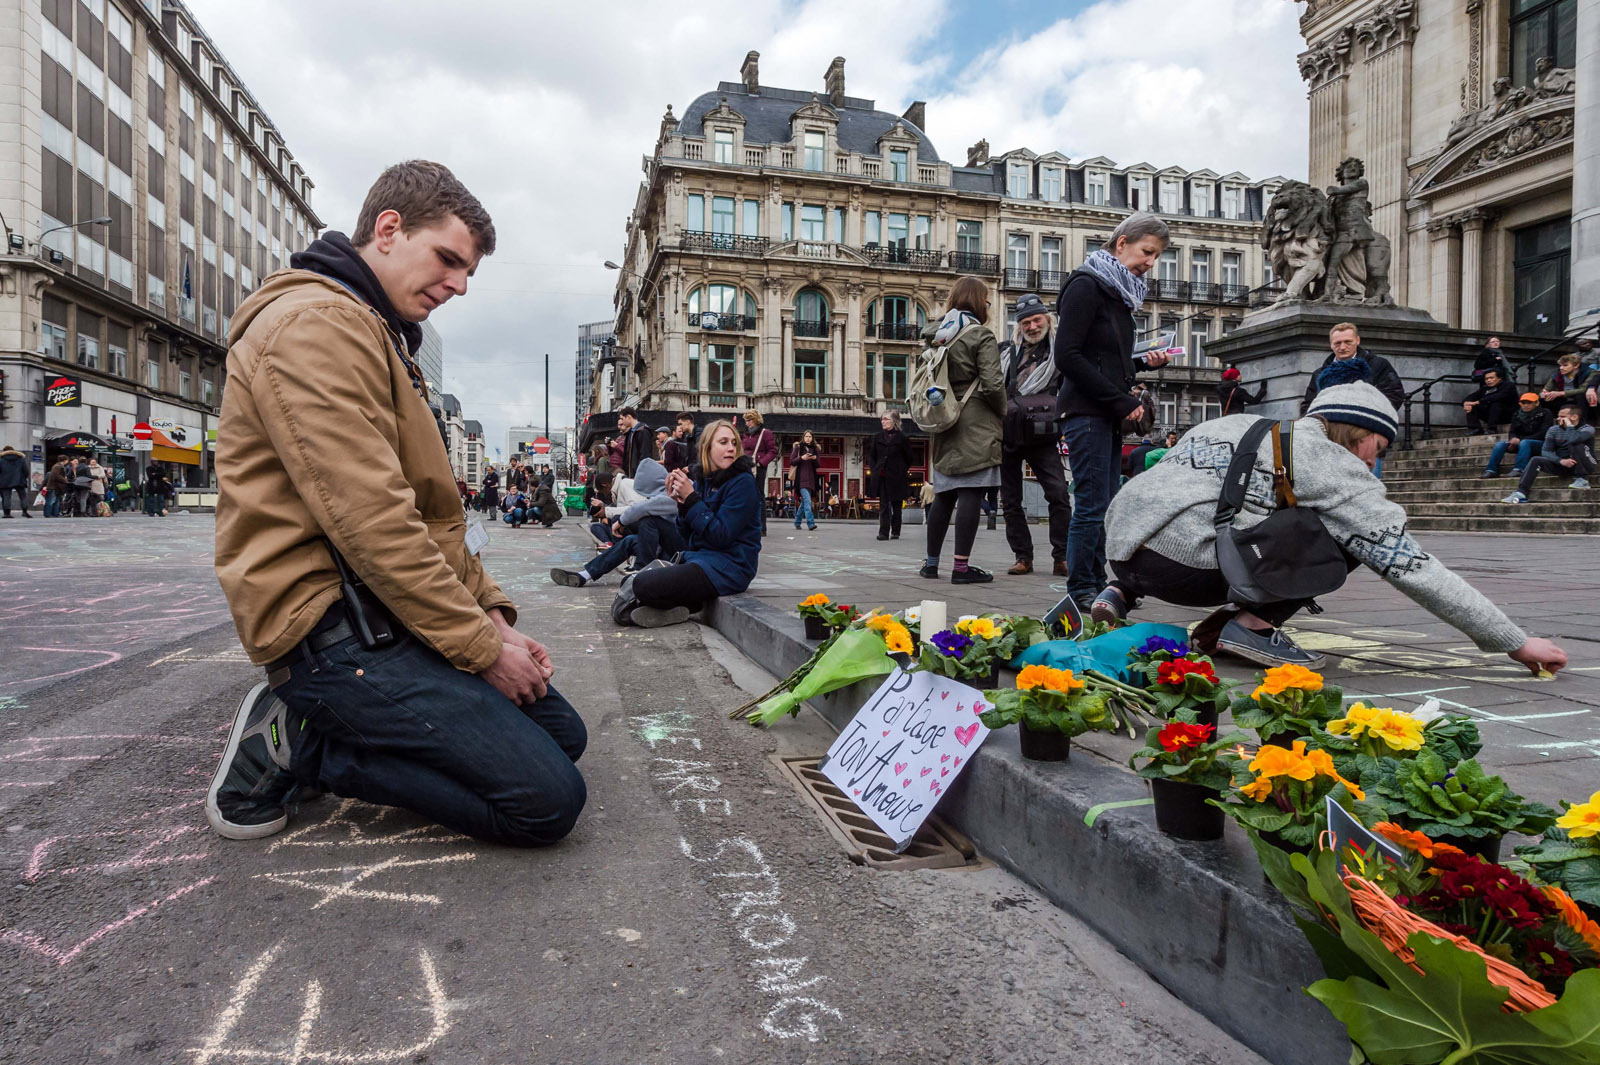 A man looks at flowers and messages outside the stock exchange in Brussels on Tuesday, March 22, 2016. Explosions, at least one likely caused by a suicide bomber, rocked the Brussels airport and subway system Tuesday, prompting a lockdown of the Belgian capital and heightened security across Europe. At least 26 people were reported dead. (AP Photo/Geert Vanden Wijngaert)